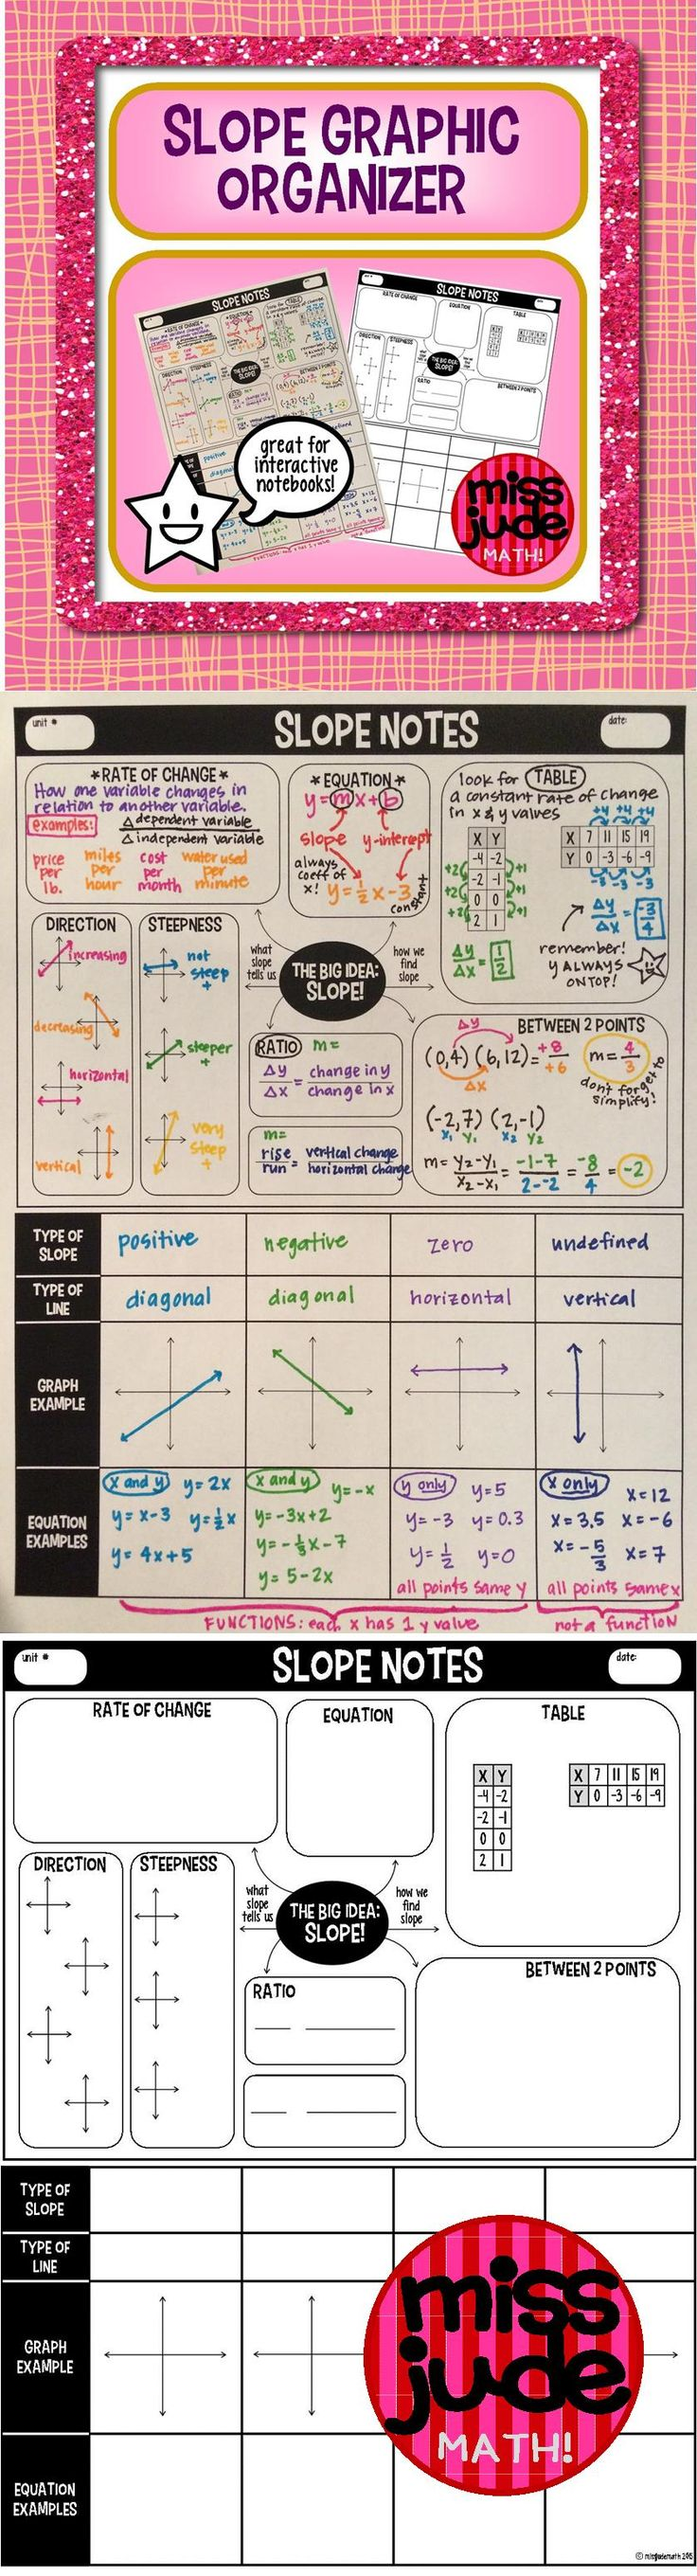 All-in-one slope notes page is intended to be used as a reference and reminder sheet for students to refer back to throughout a unit.  Concepts can be added to the organizer as they are introduced throughout the unit.  Includes space to record how to find slope from tables, points & an equation.  Slope tells us about rate of change, the direction, and steepness of a graph. Relates types of lines, types of equations & types of slope.  Happy solving from the miss jude math! shop